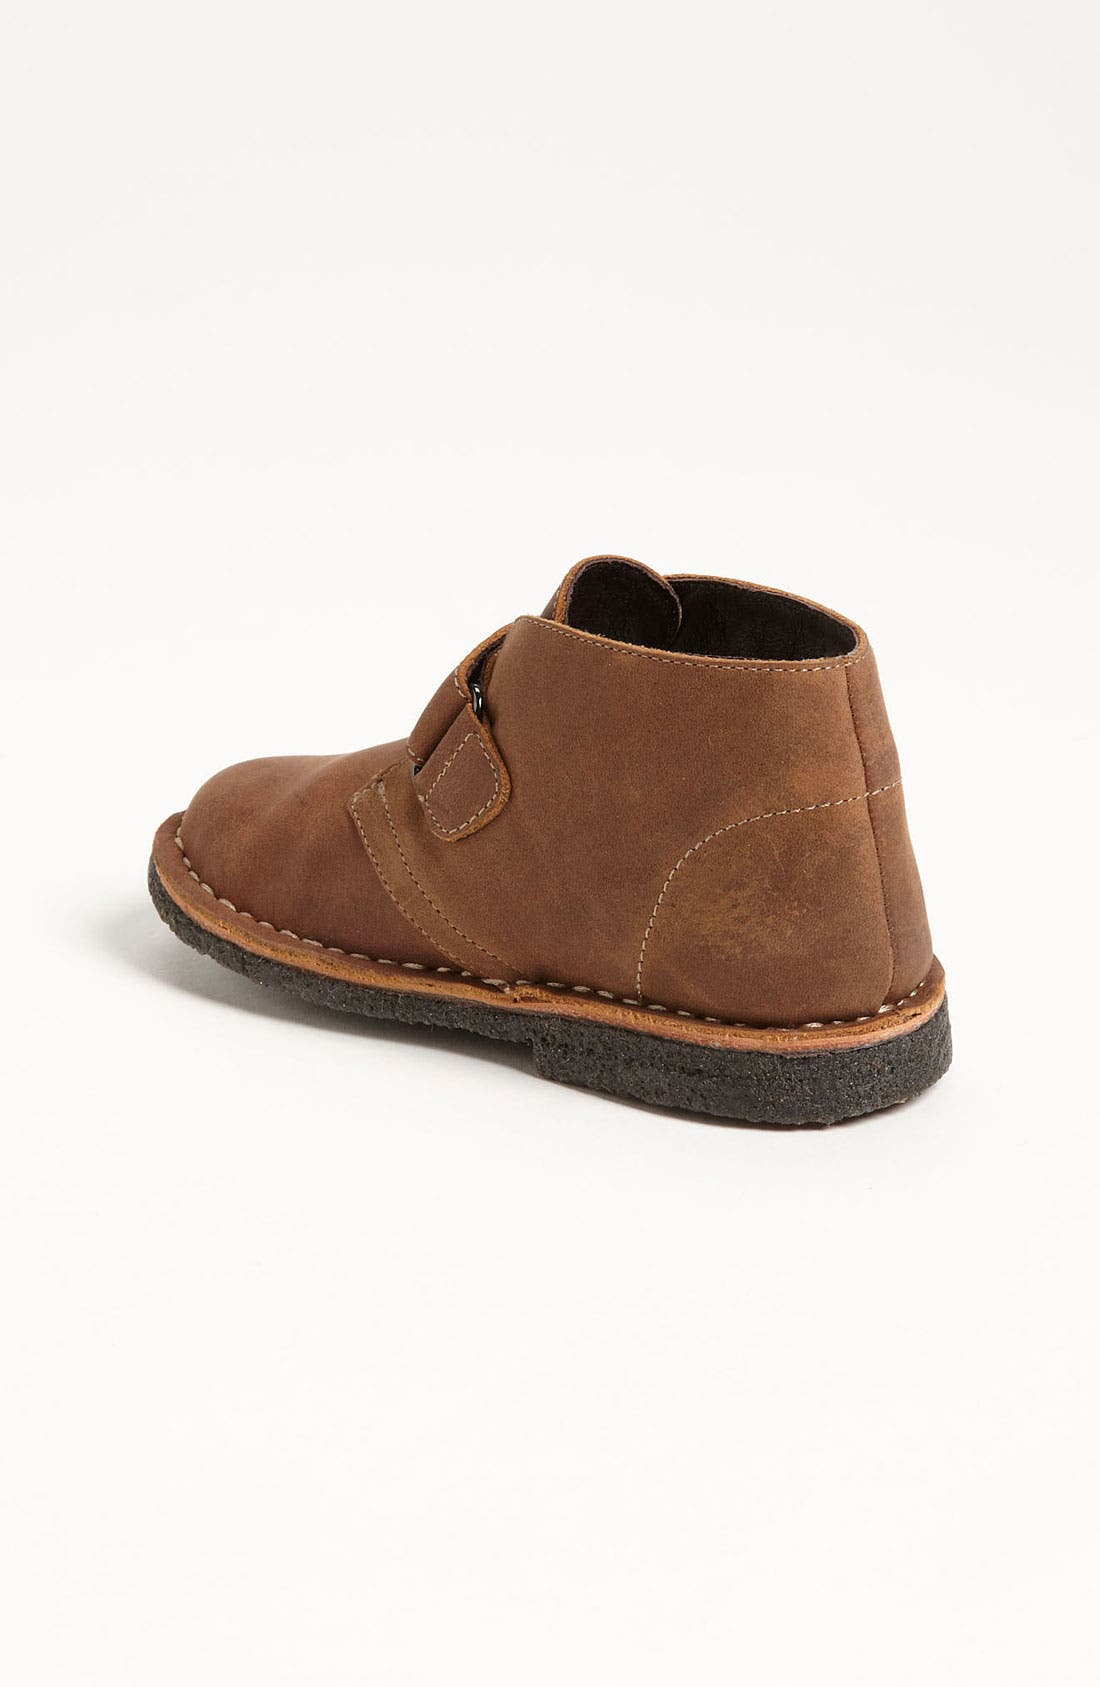 Alternate Image 2  - Cole Haan 'City' Chukka Boot (Toddler, Little Kid & Big Kid)